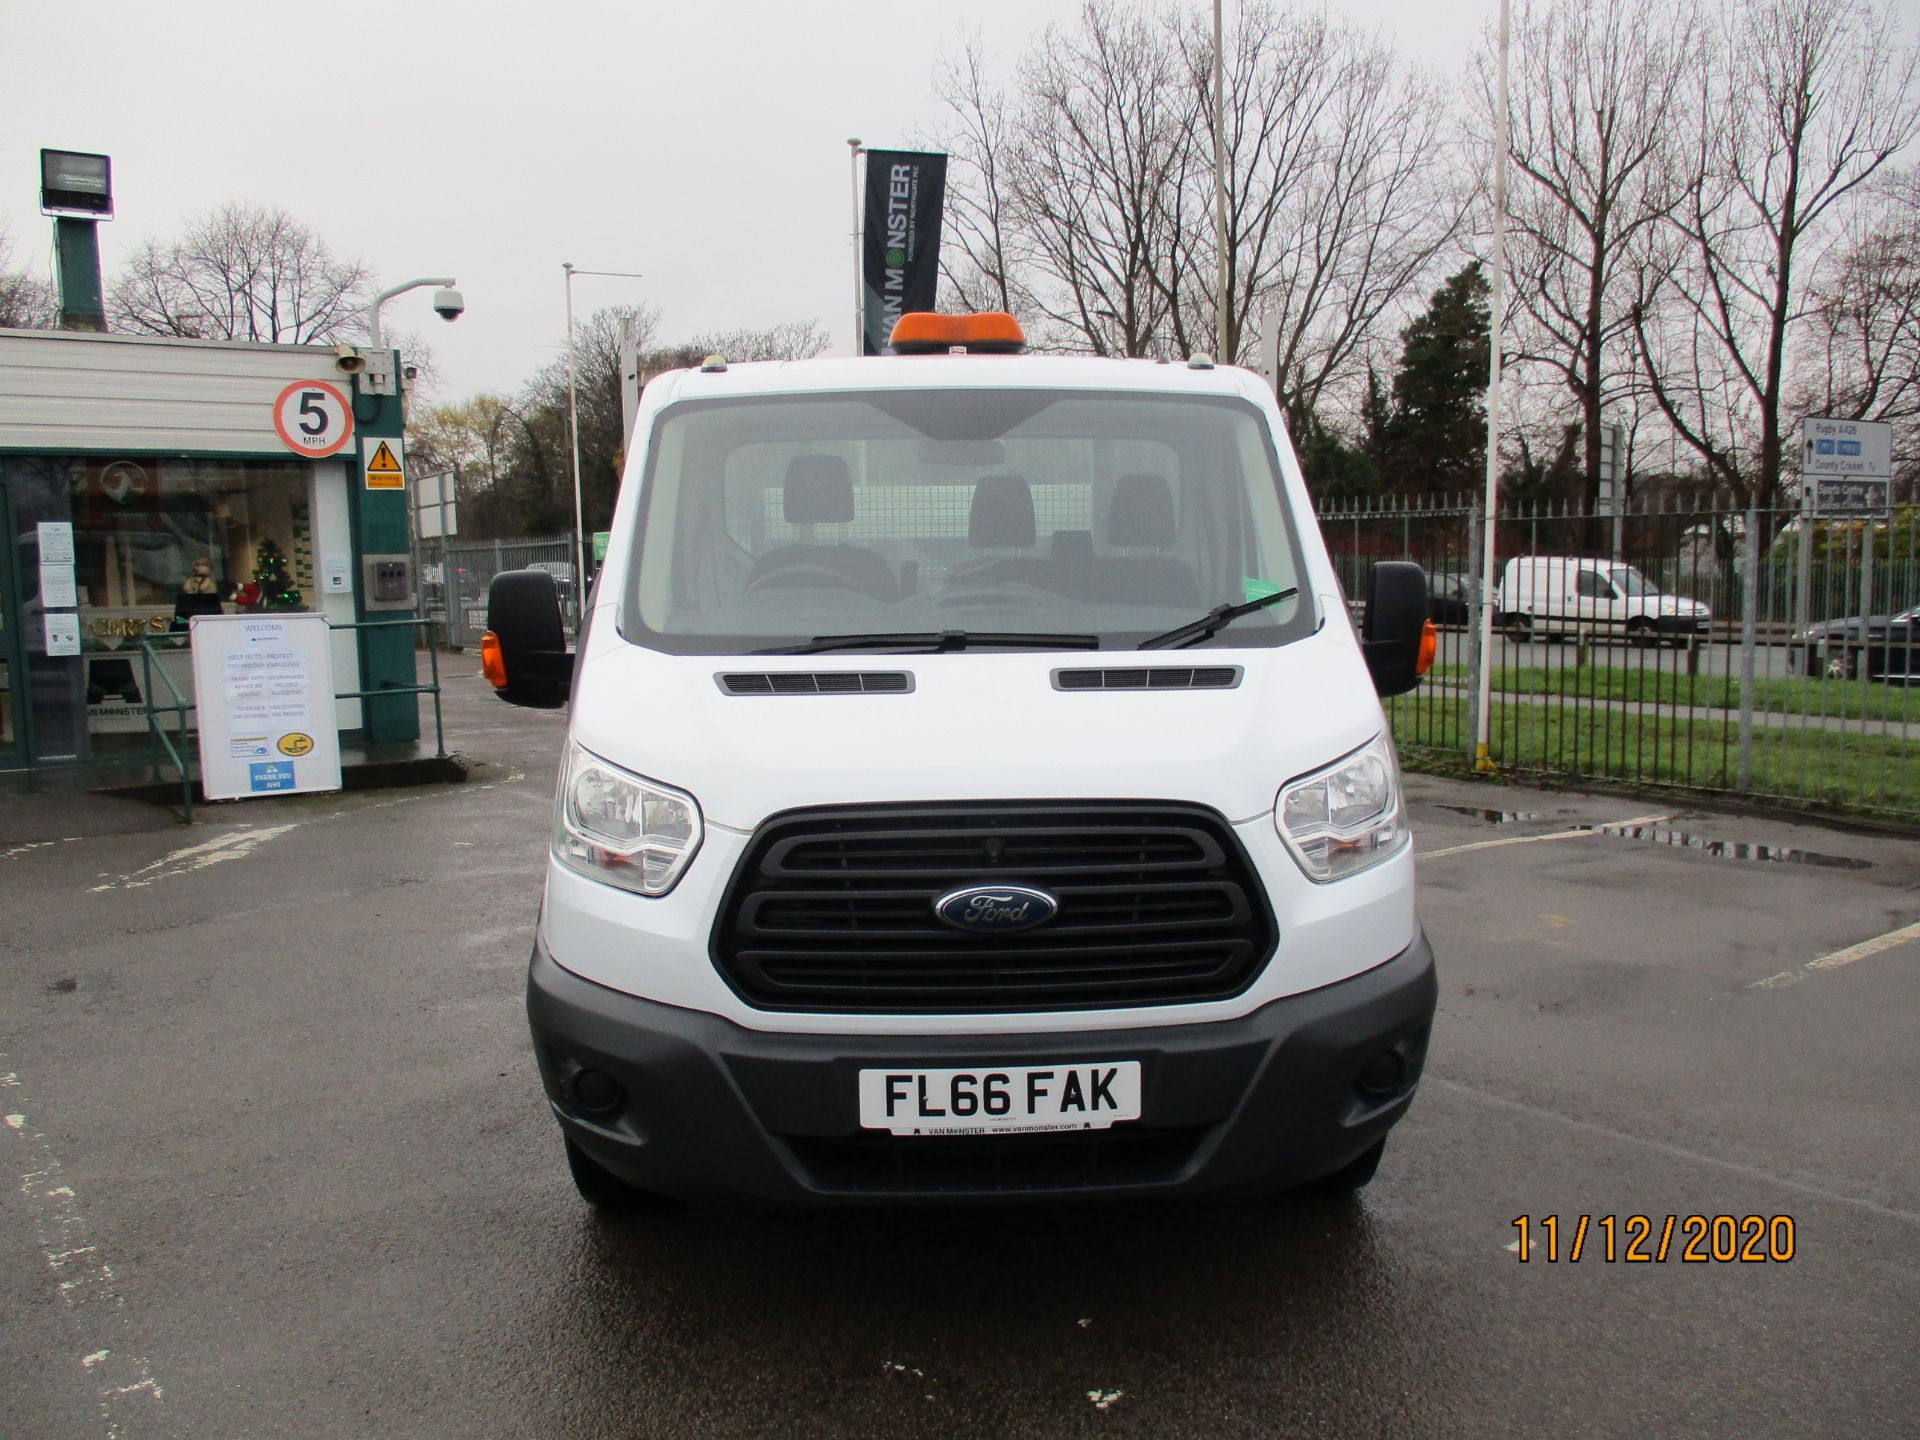 2016 Ford Transit 2.2 Tdci 125Ps Chassis Cab (FL66FAK) Image 2